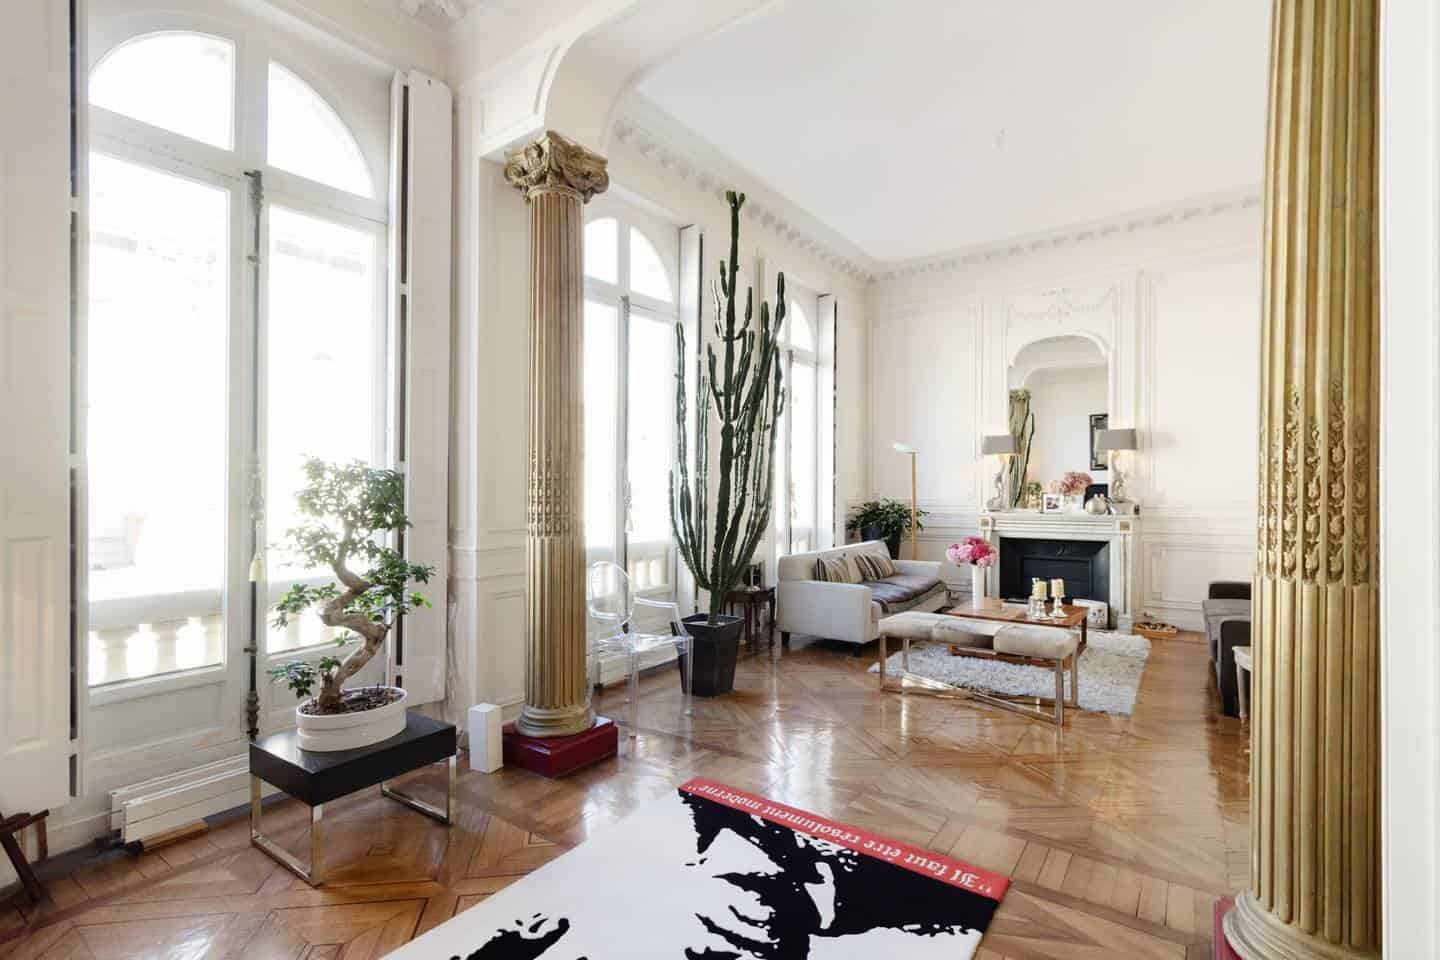 Wow! This Airbnb Paris listing near Pantheon is dreamy. You have to see the pictures!